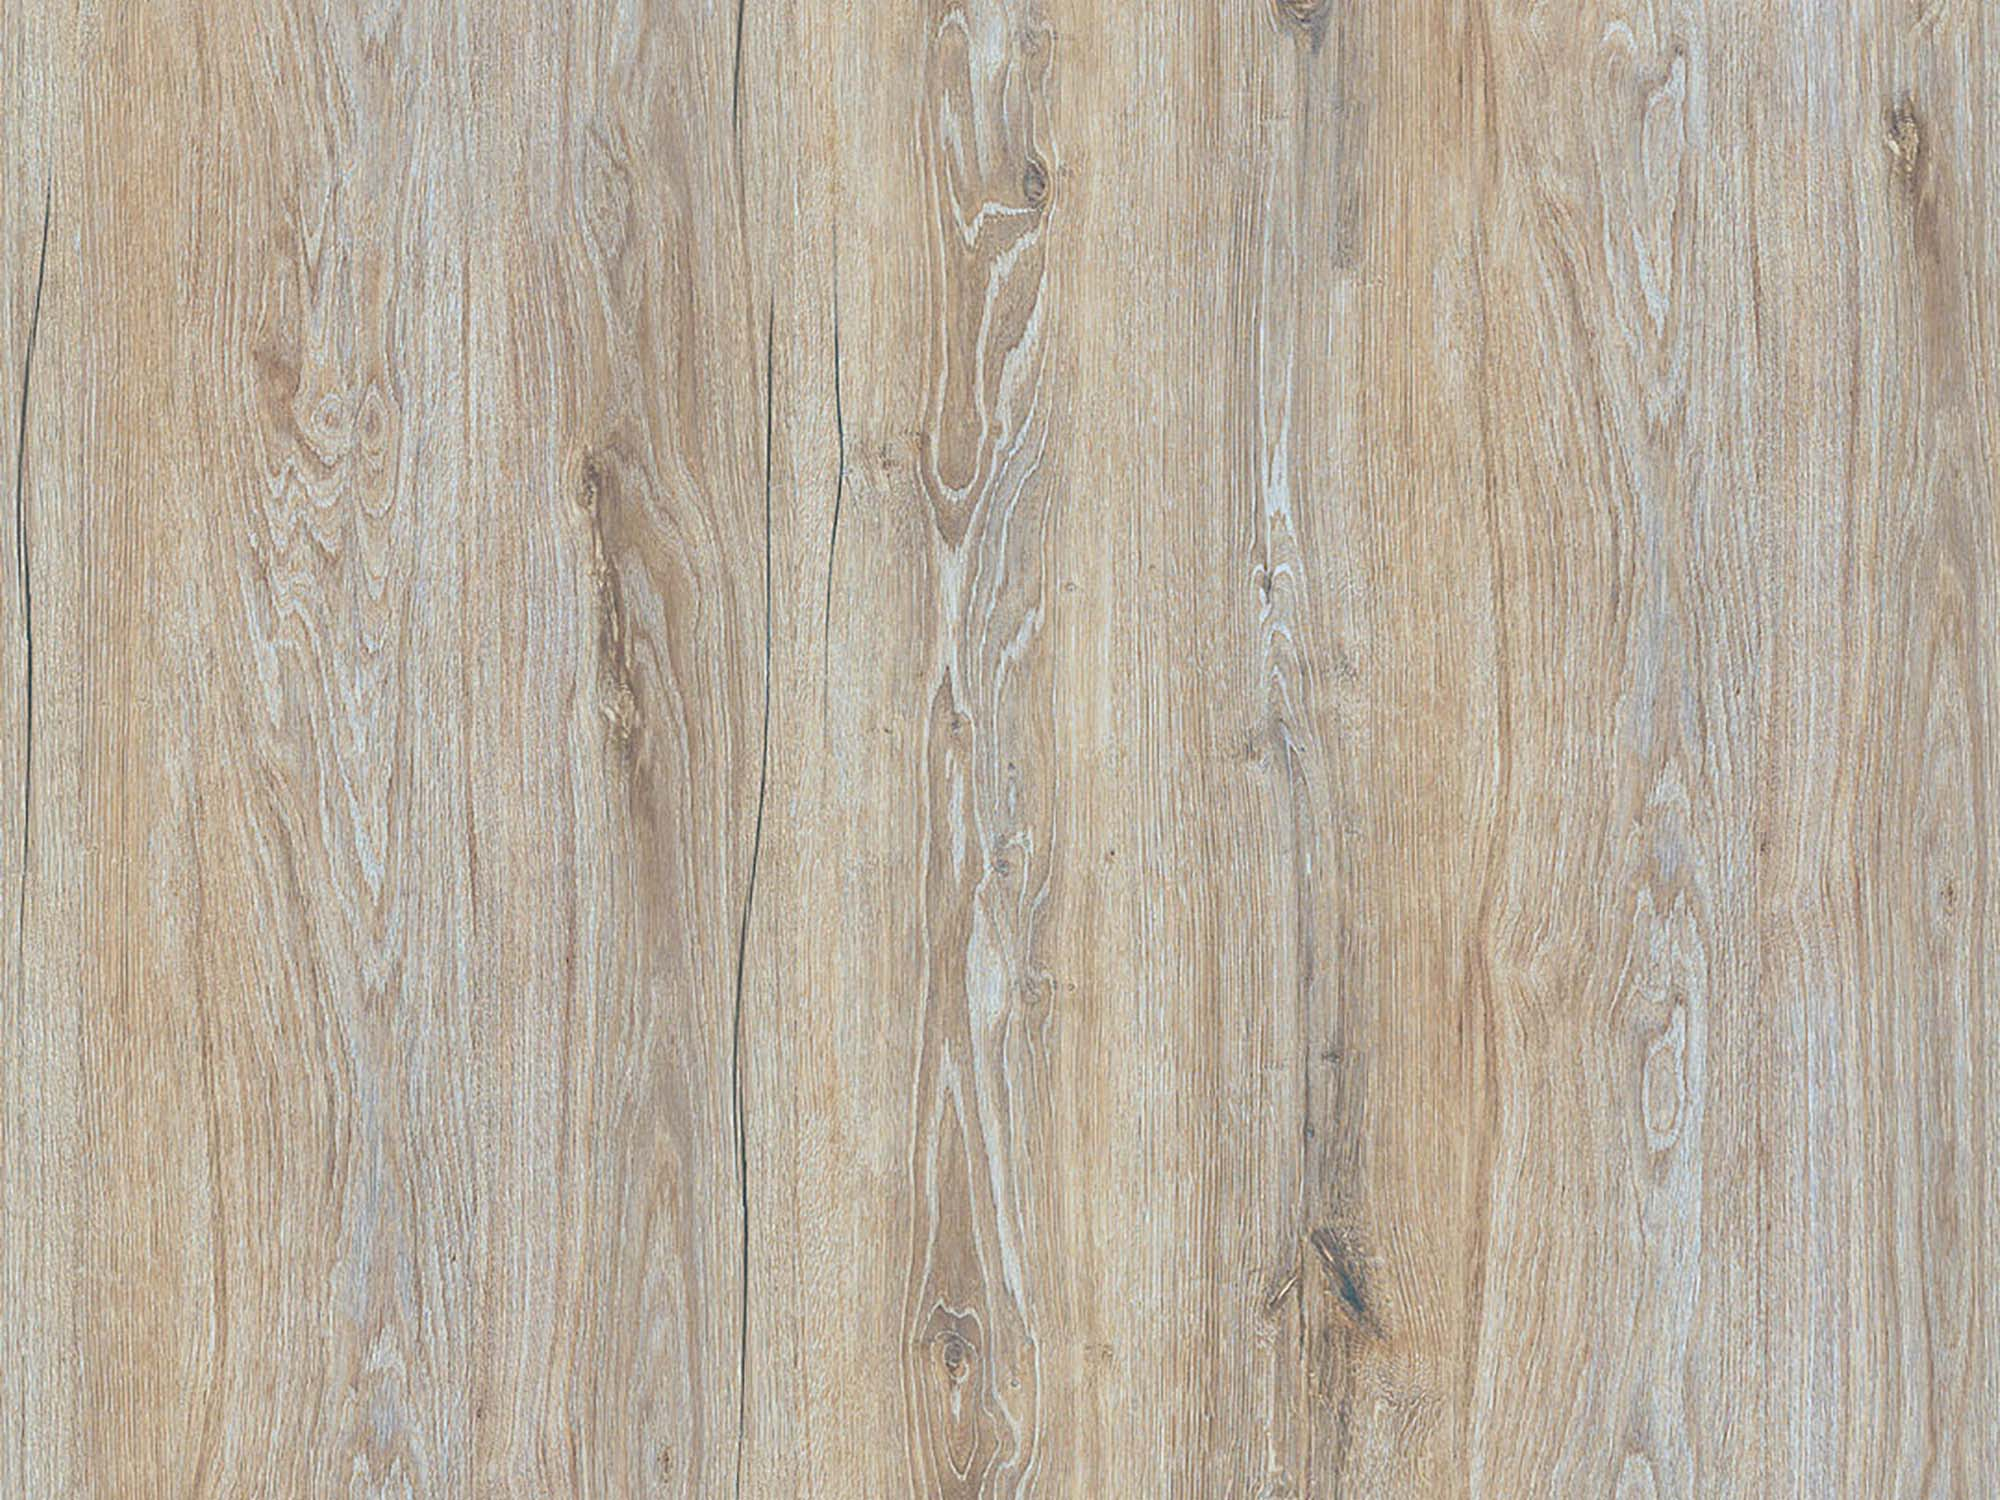 Seamless Wood Texture 4